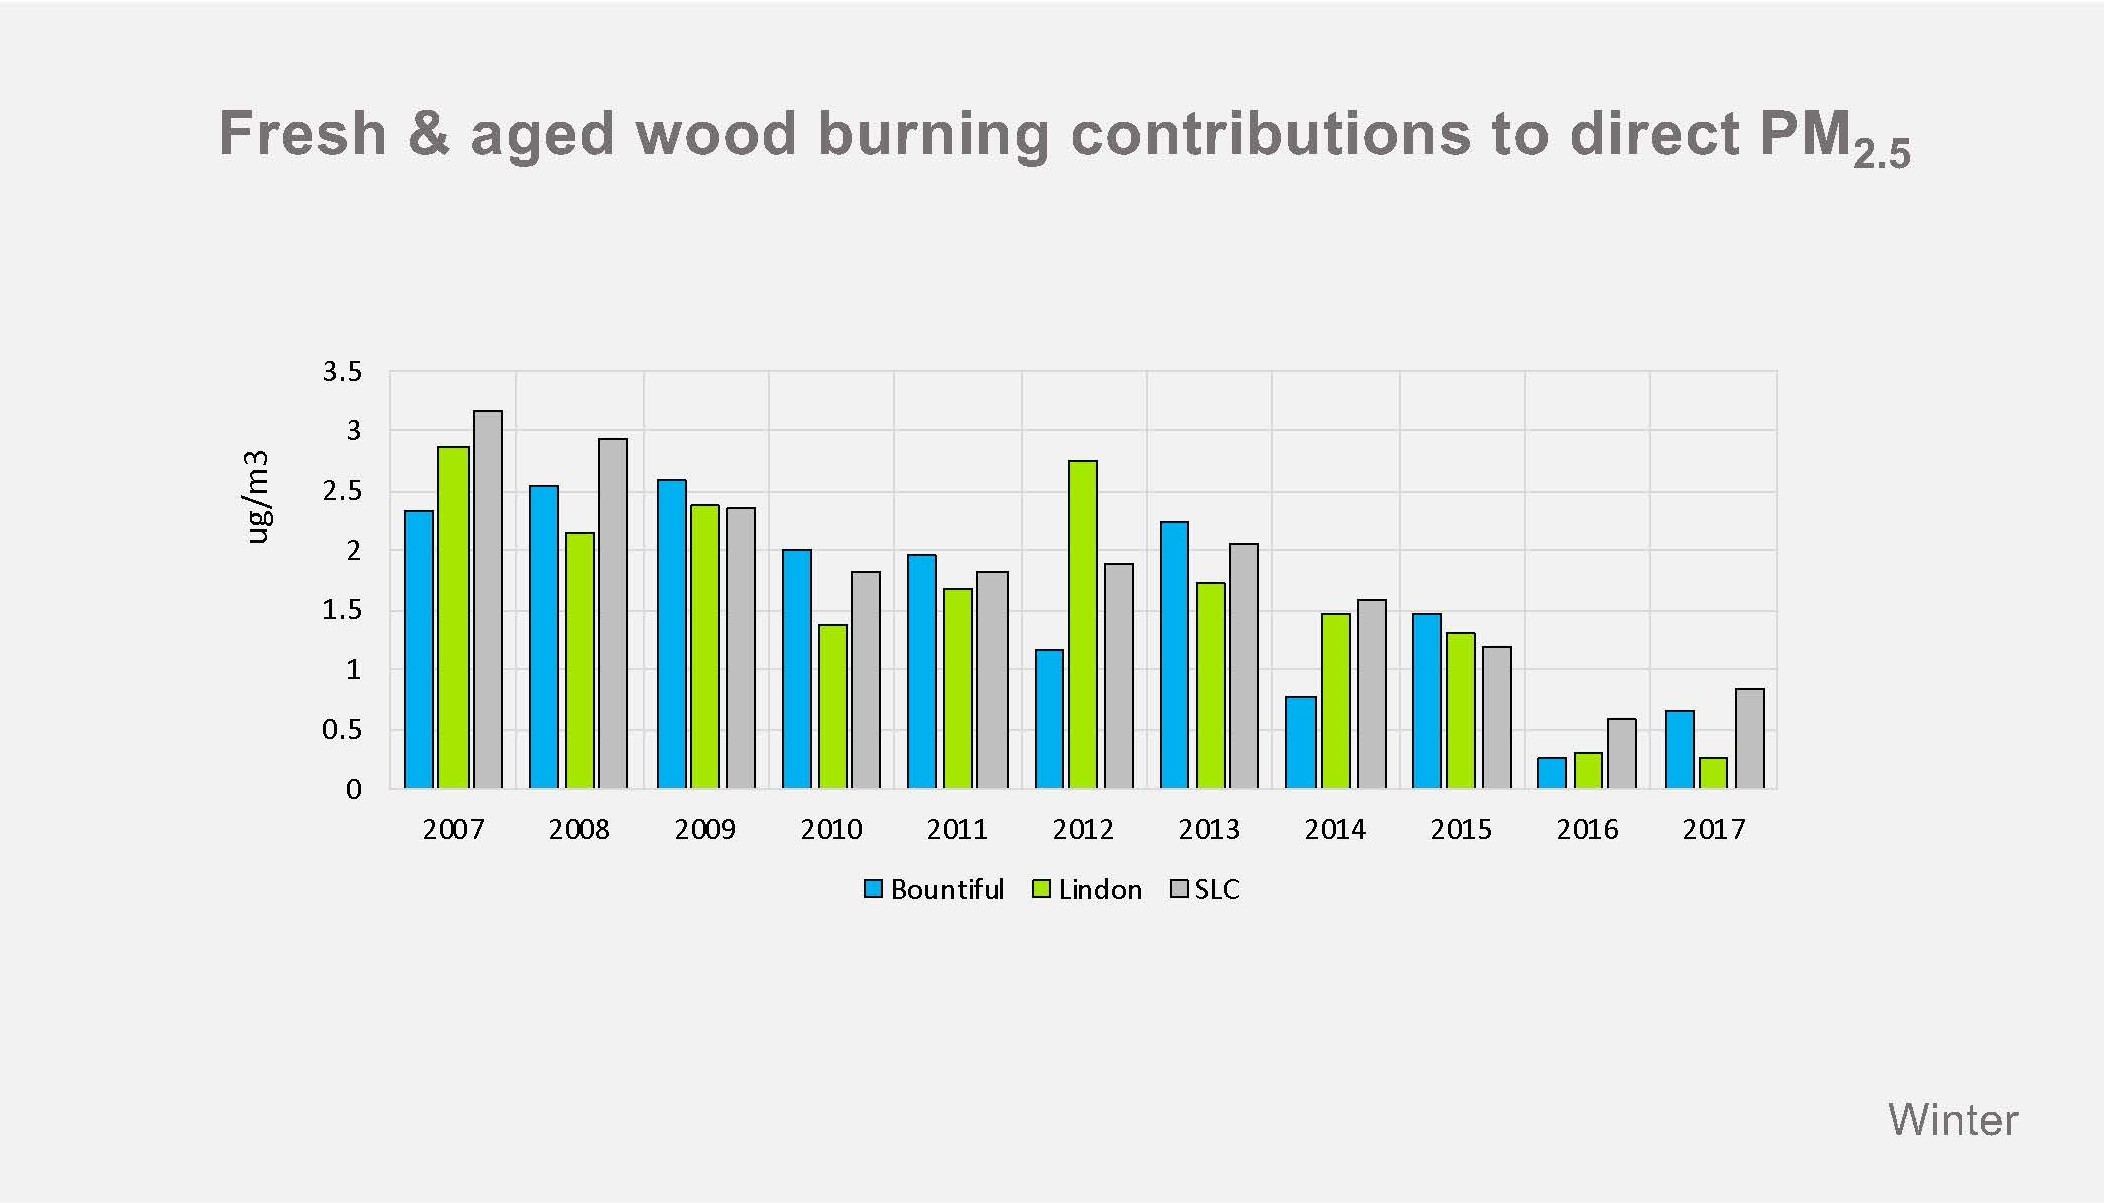 The bar chart shows that the impact of wood burning on PM 2.5 (particulate matter that contributes to air pollution) has decreased significantly over the last 10 years thanks to restrictions placed on the activity. The measurements were made at three air quality monitoring stations in Salt Lake City, Lindon and Bountiful.